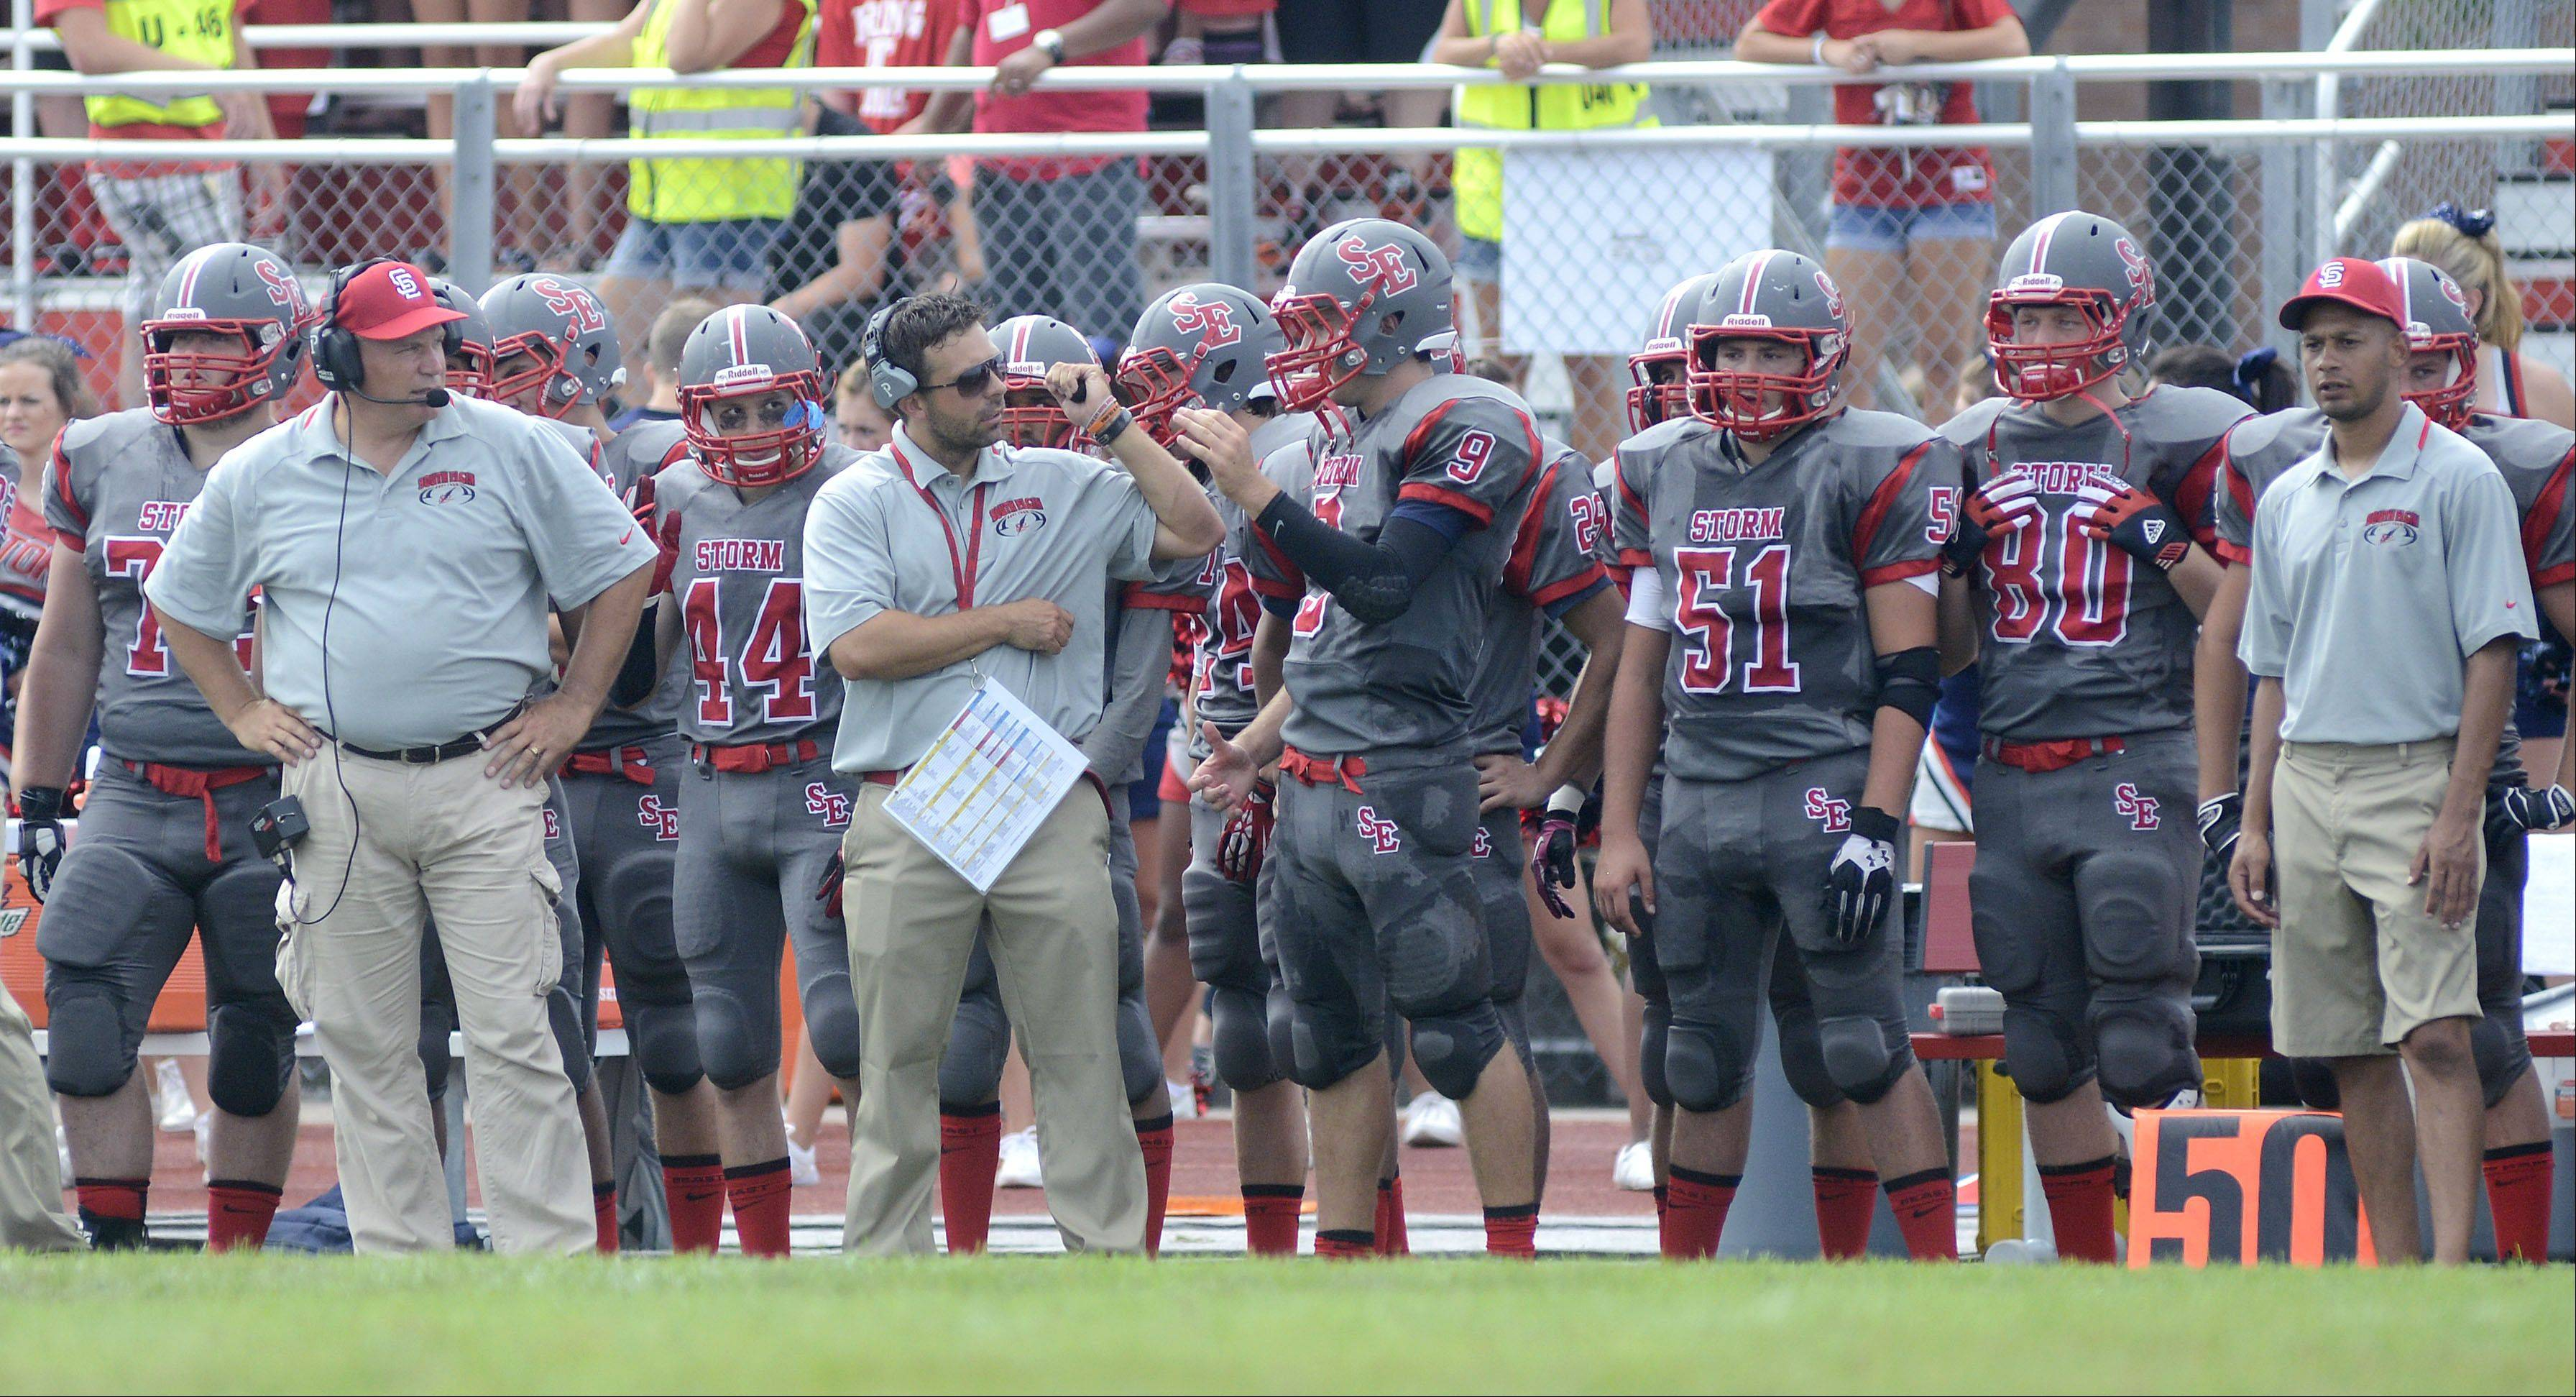 South Elgin coach Pat Pistorio, second from left, on the sidelines with players on Saturday, August 31.